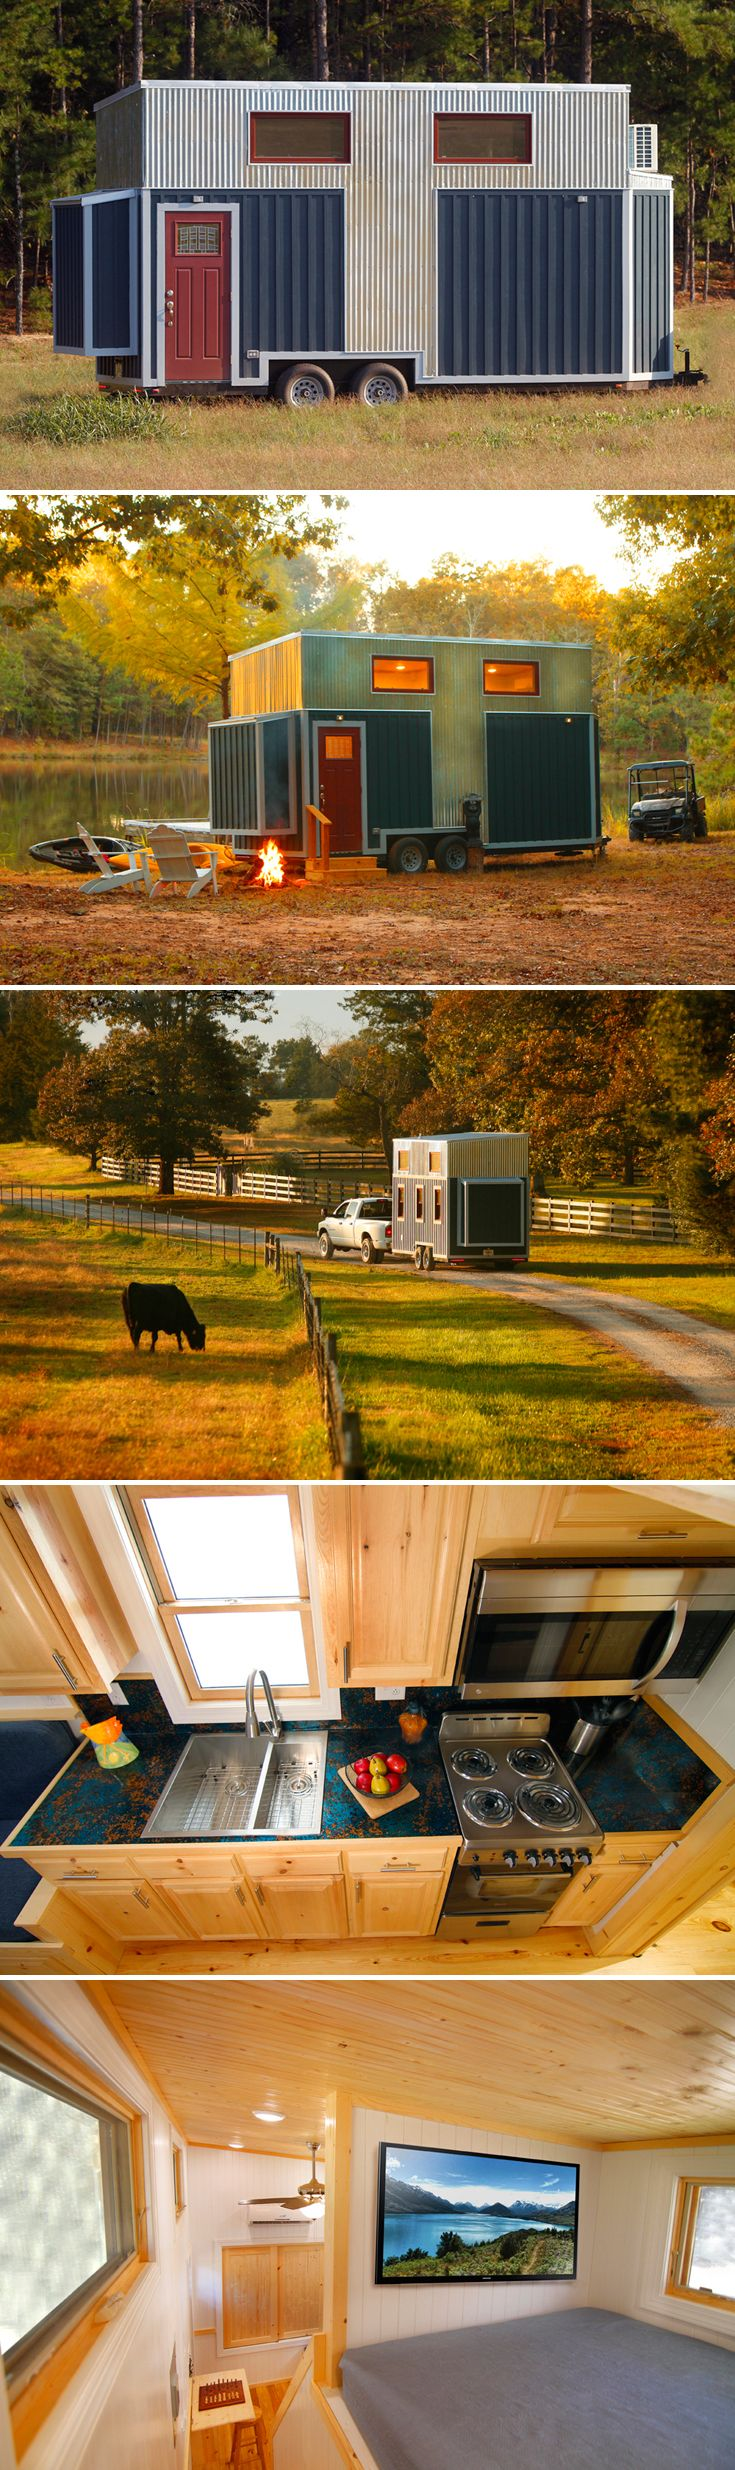 tiny house nation episode guide